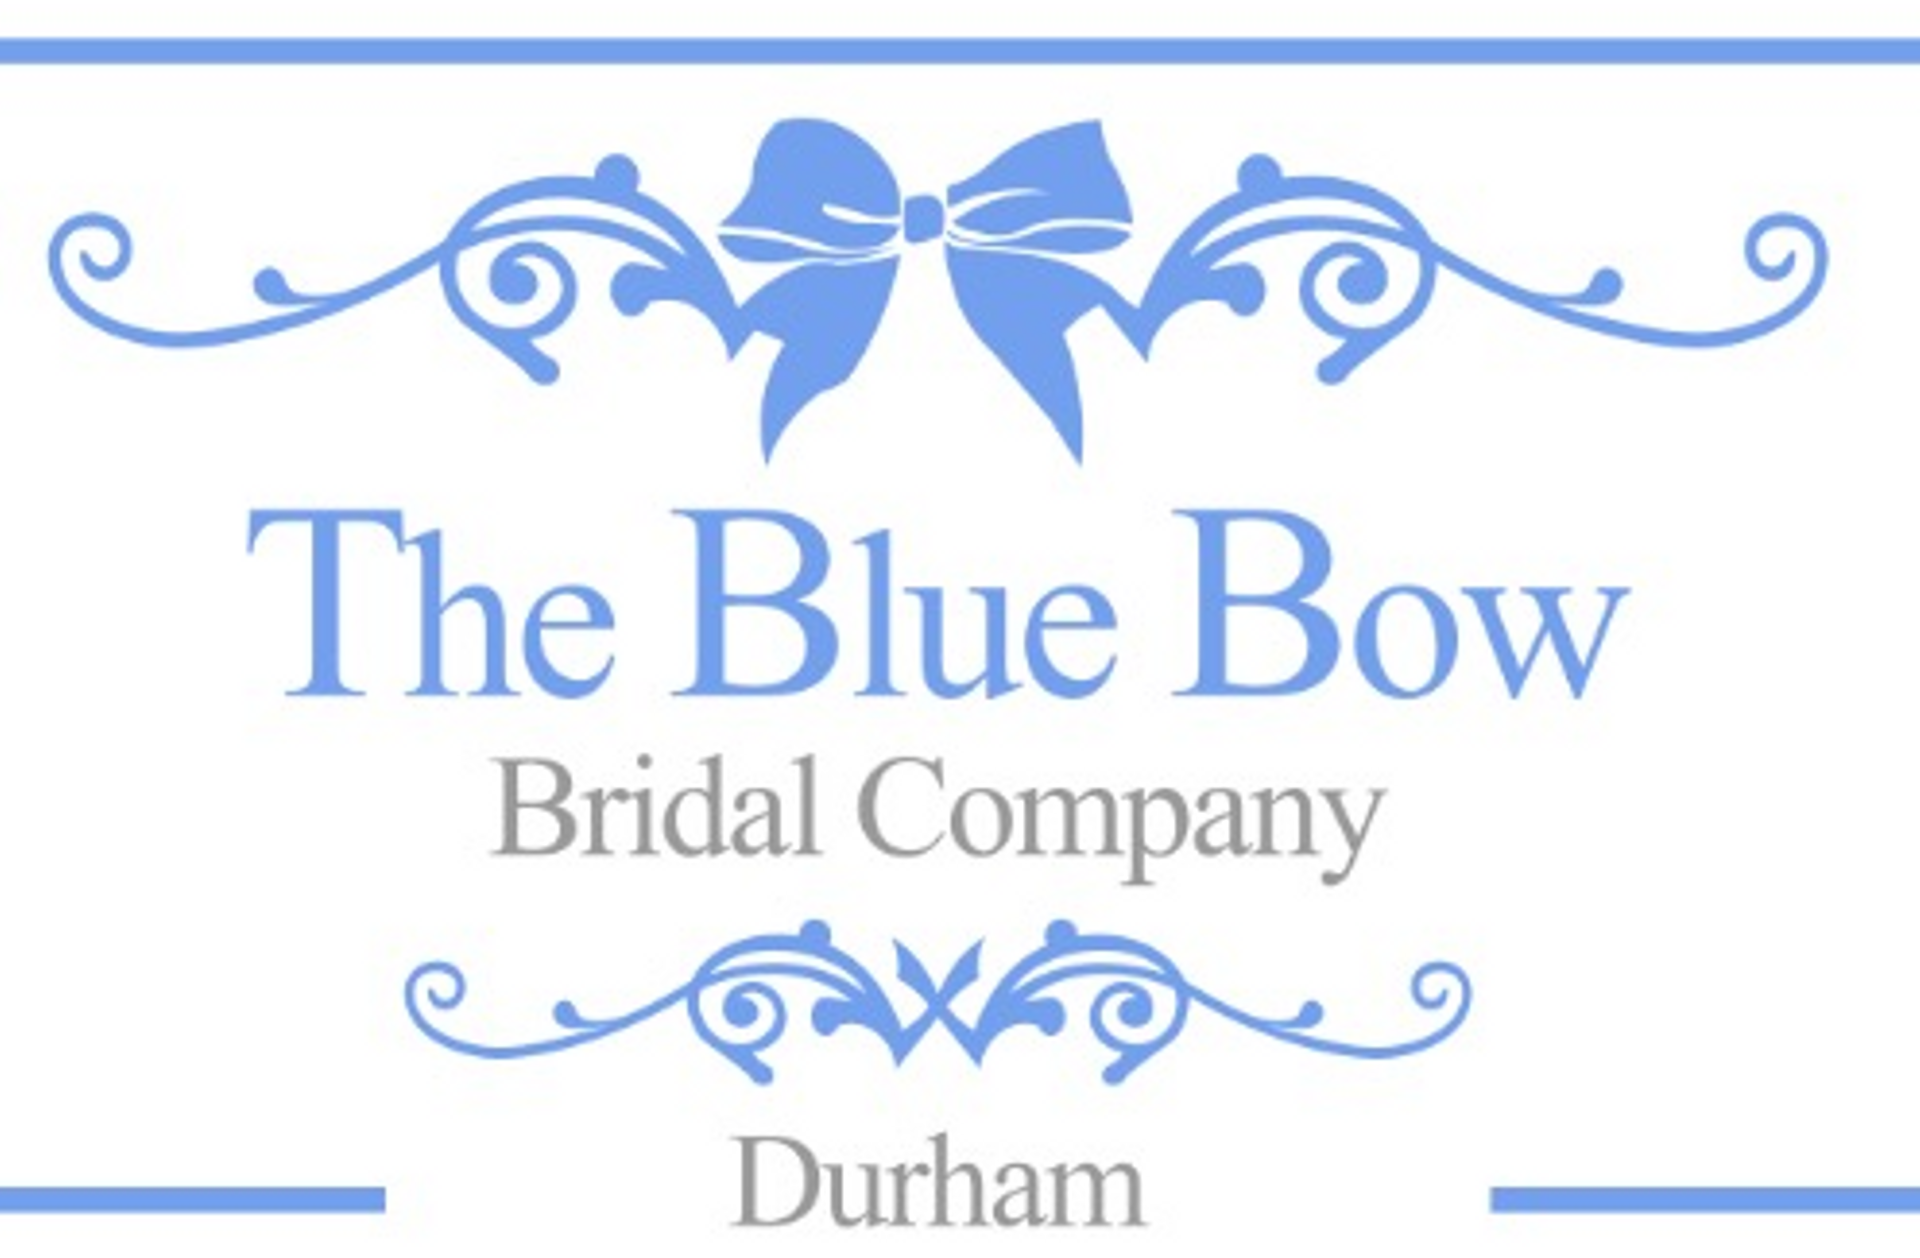 The Blue Bow Bridal Company